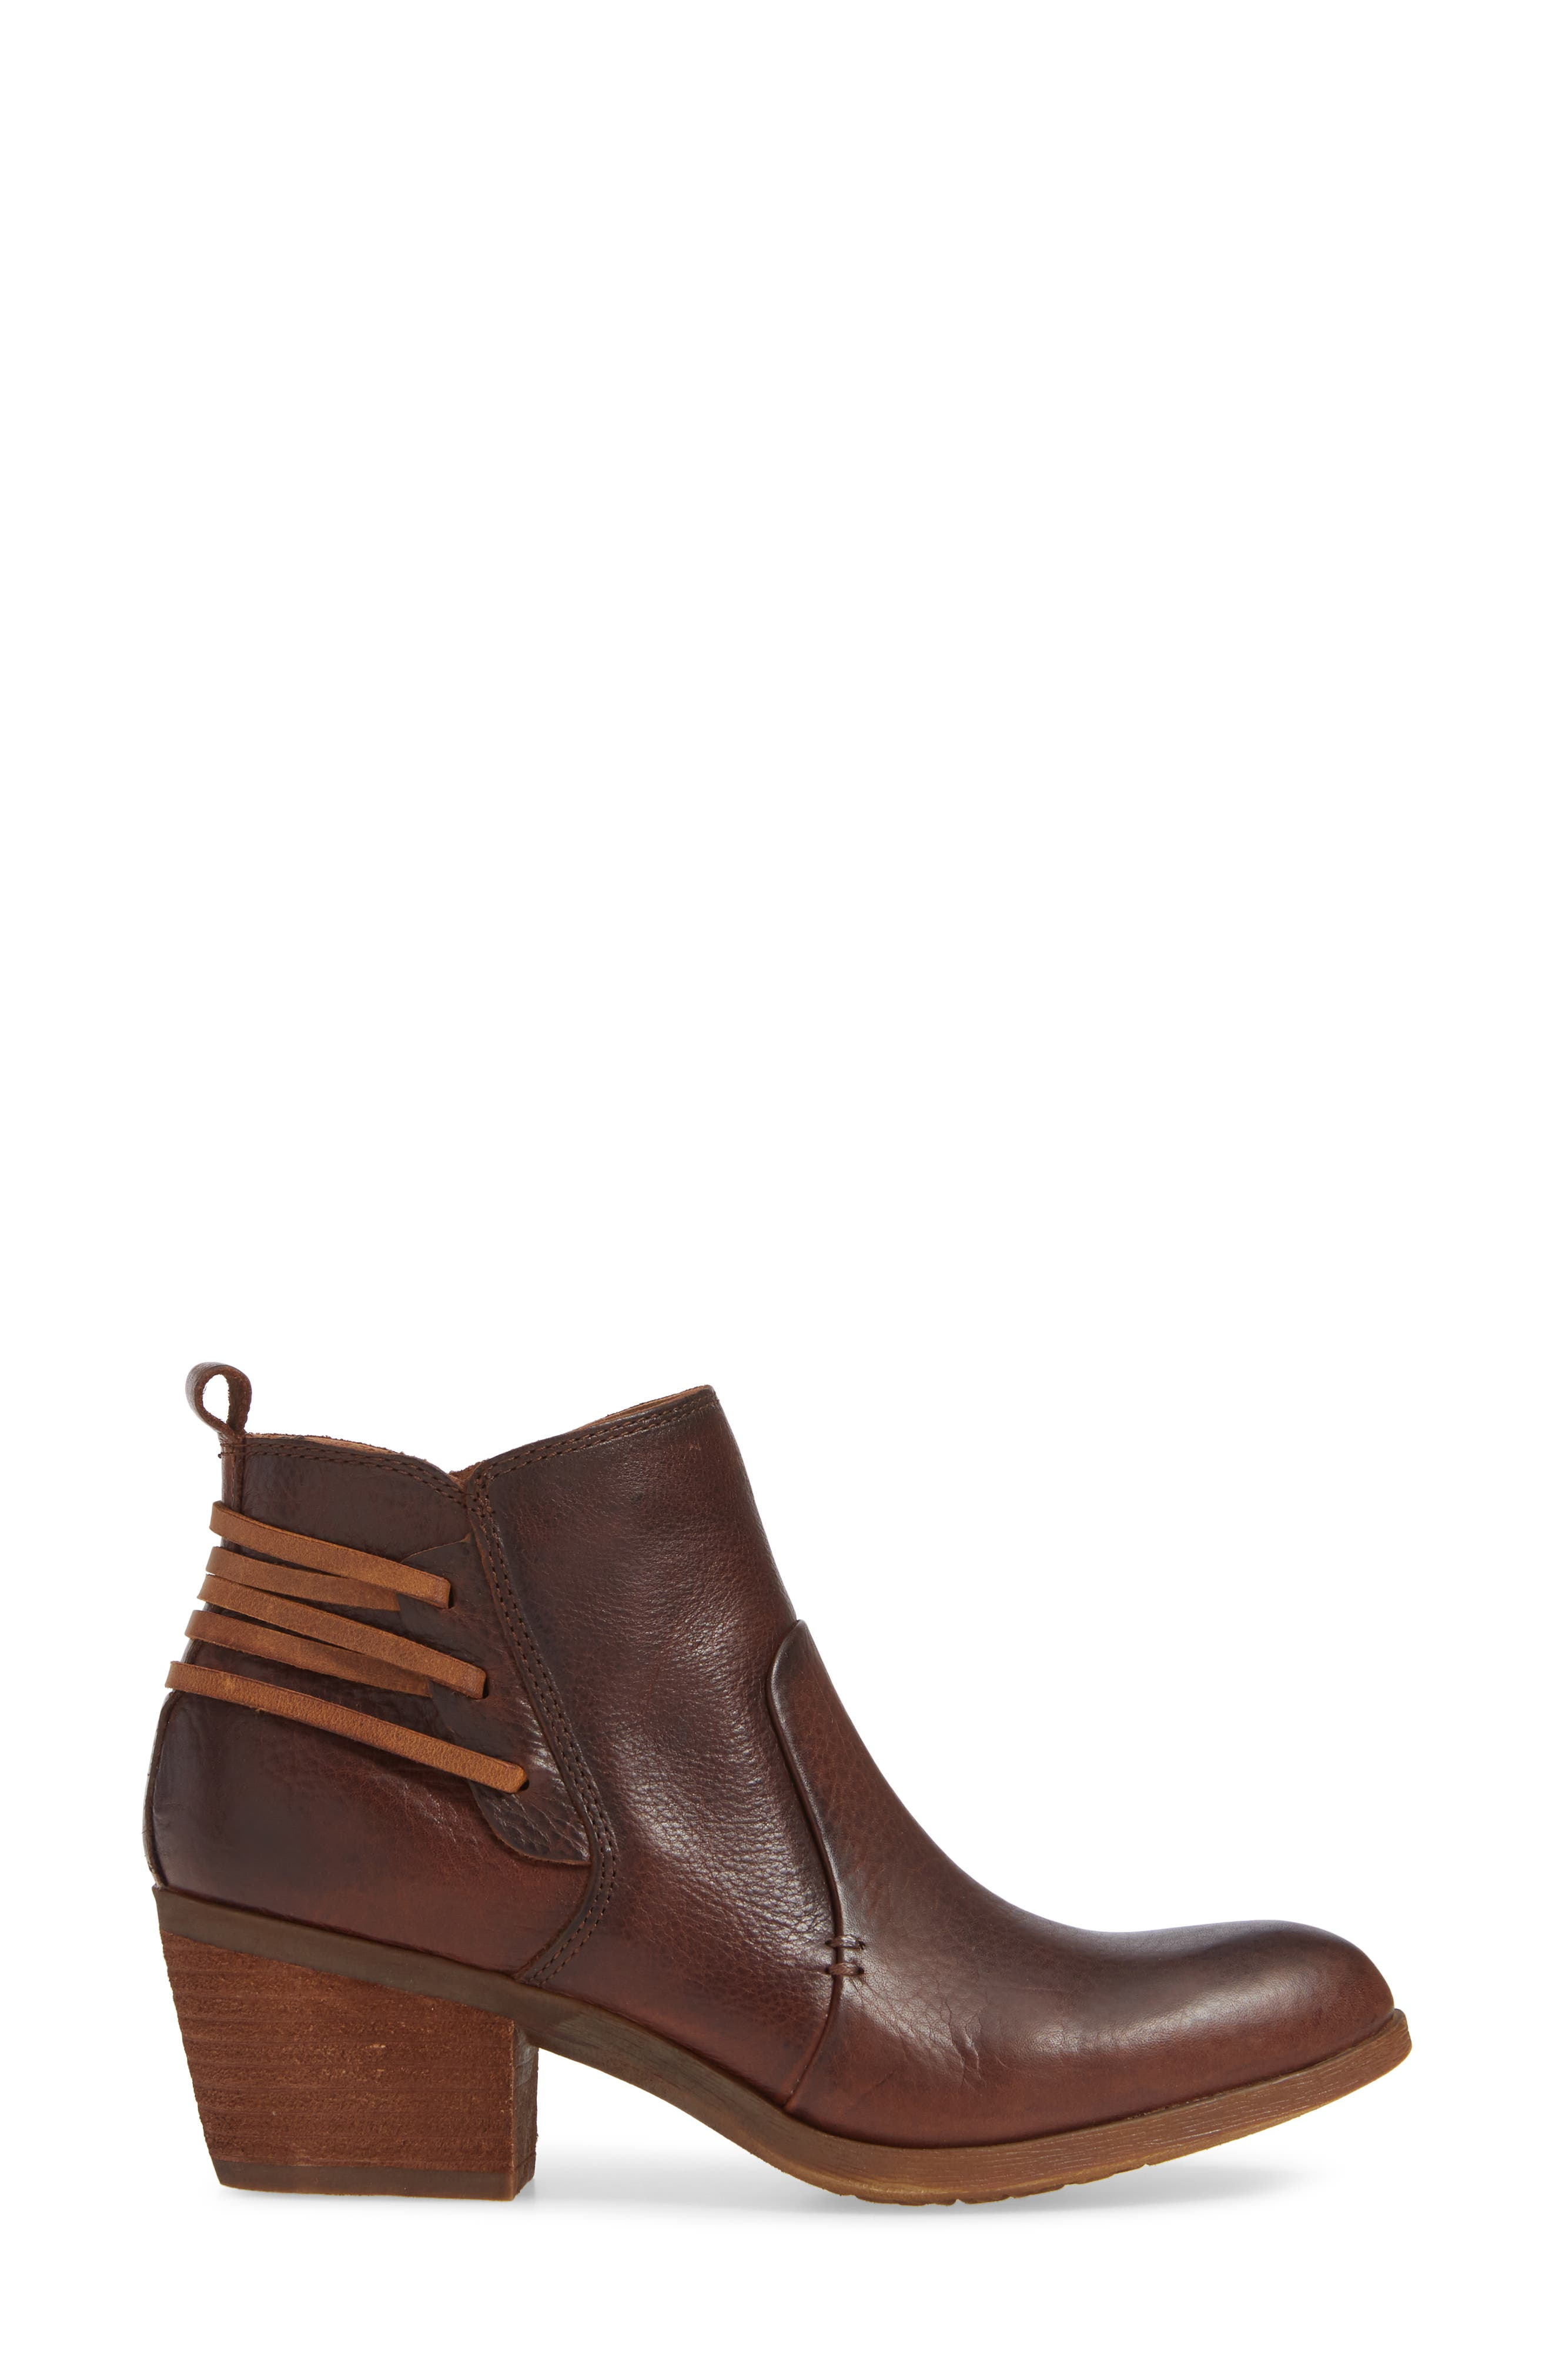 Kinsley Bootie,                             Alternate thumbnail 3, color,                             WHISKEY/ ALMOND